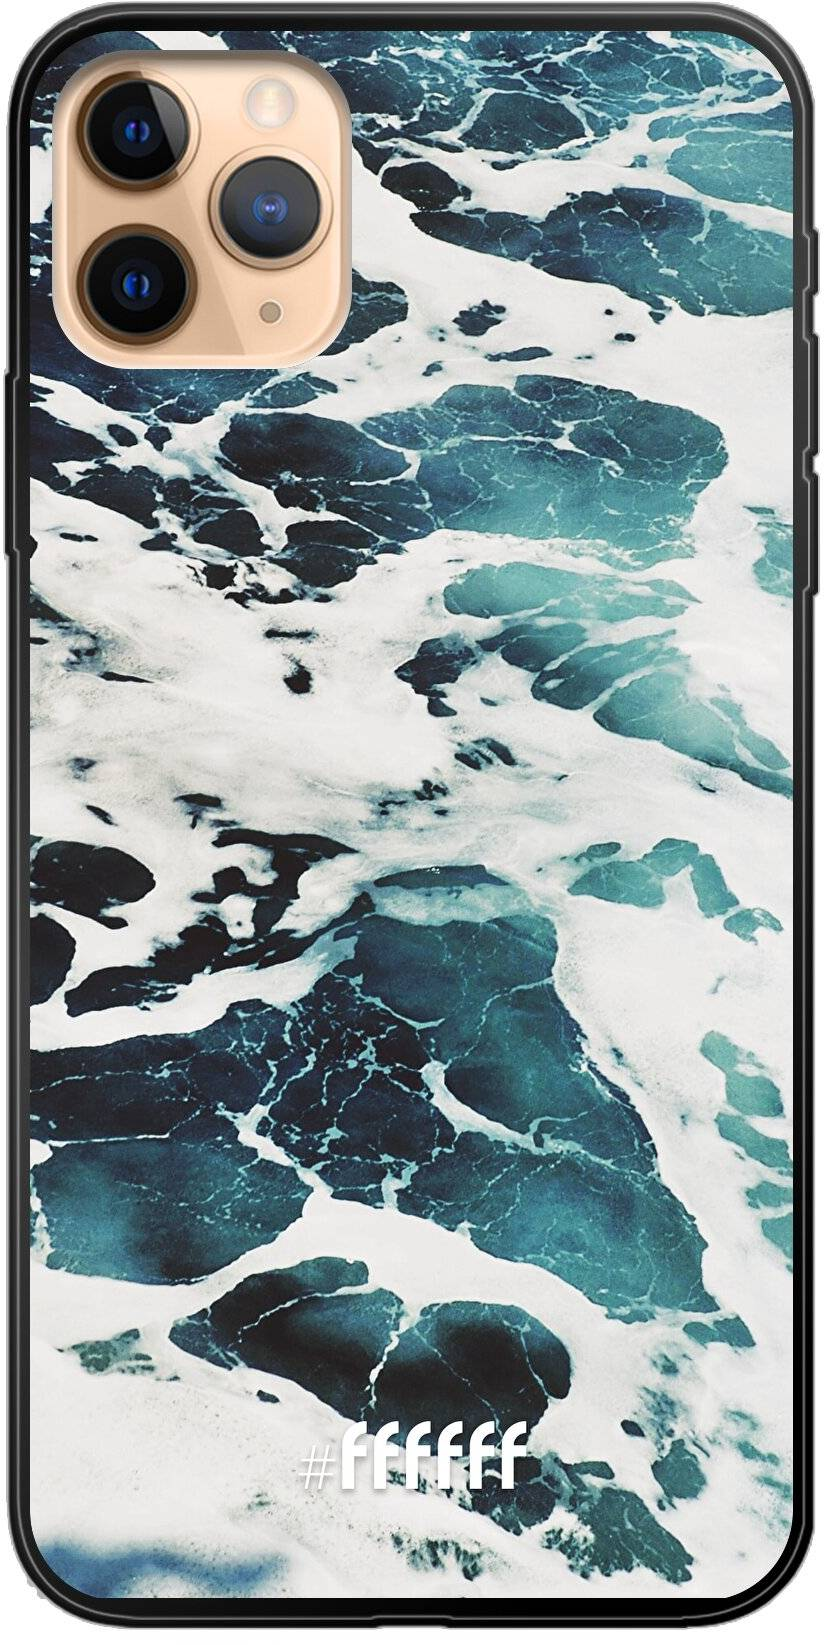 Waves iPhone 11 Pro Max